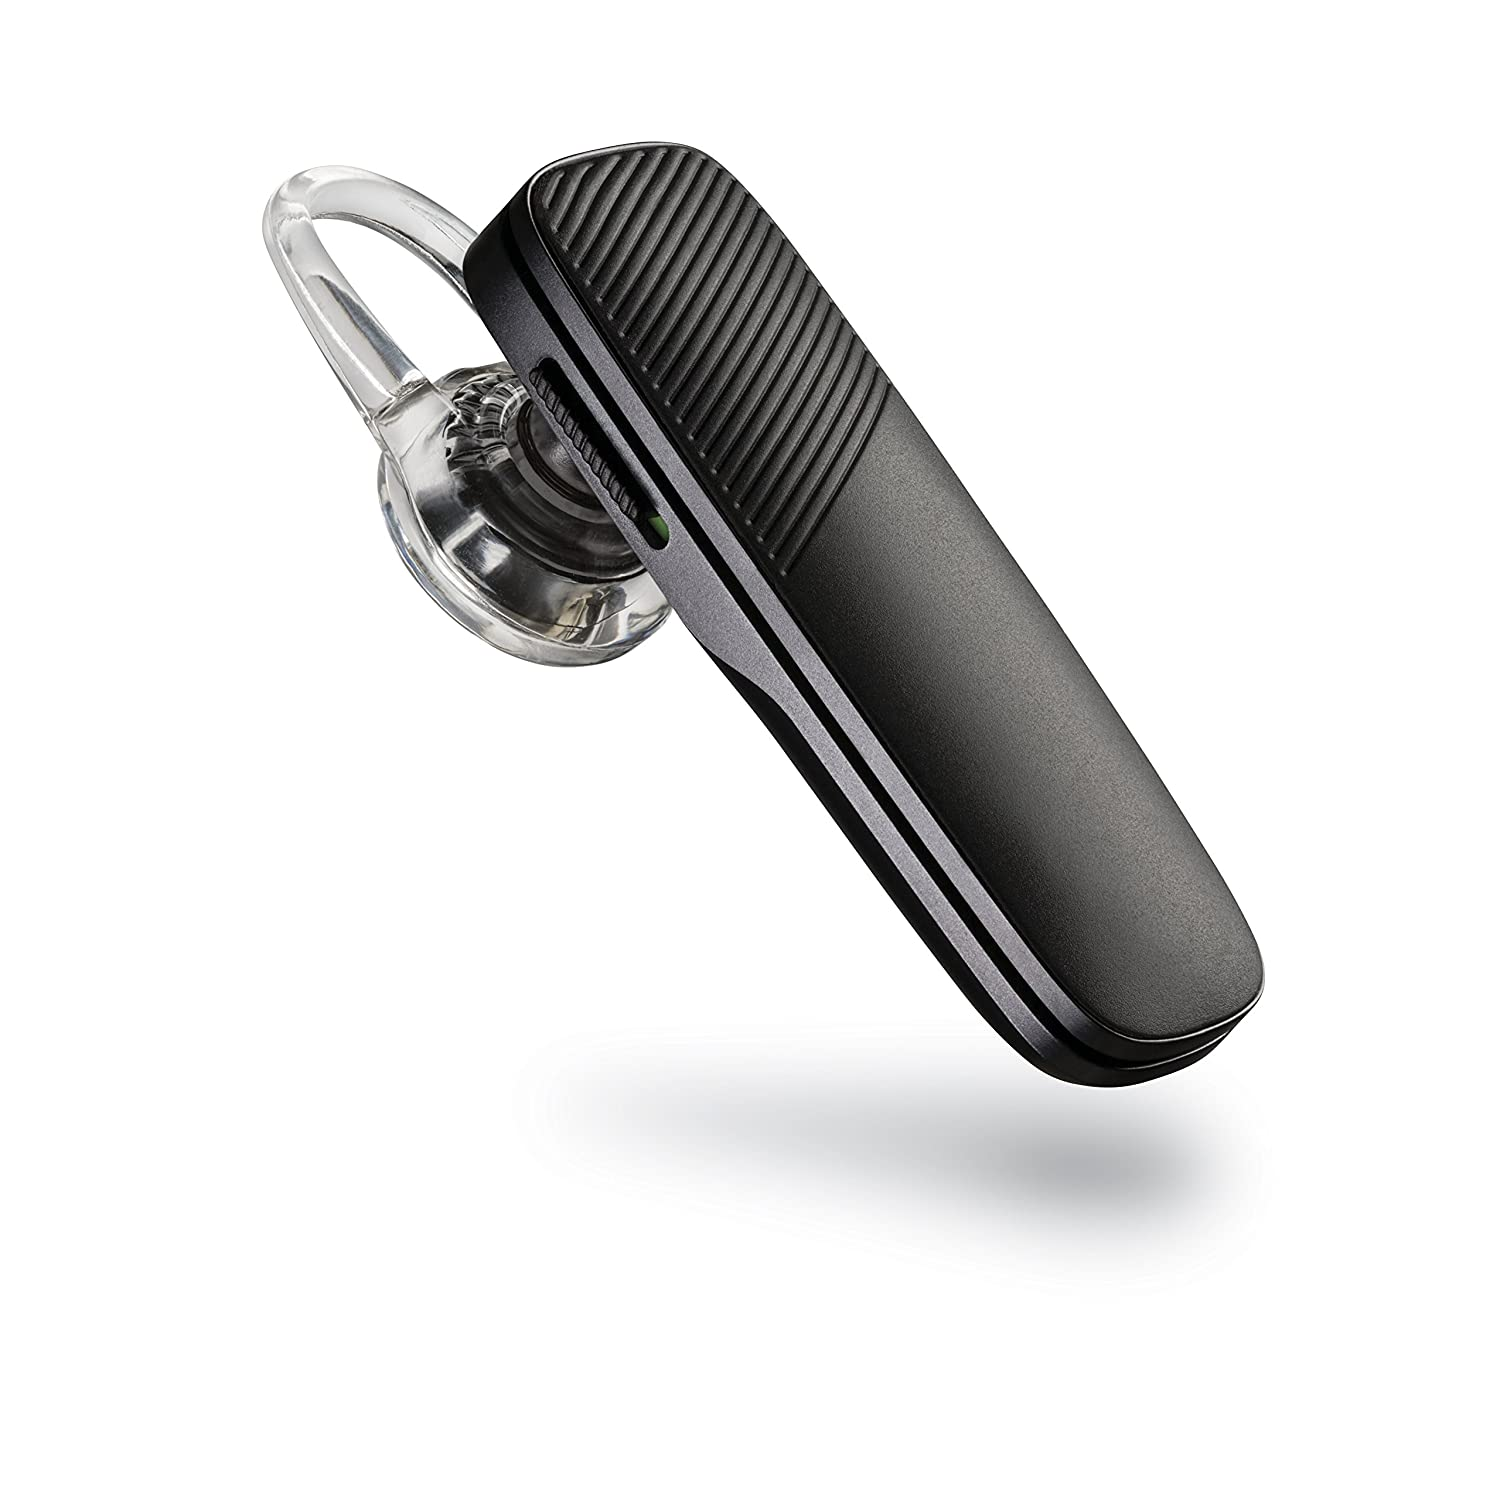 Plantronics Explorer 500 - Auriculares monoaural (Bluetooth, HD, DeepSleep), color negro